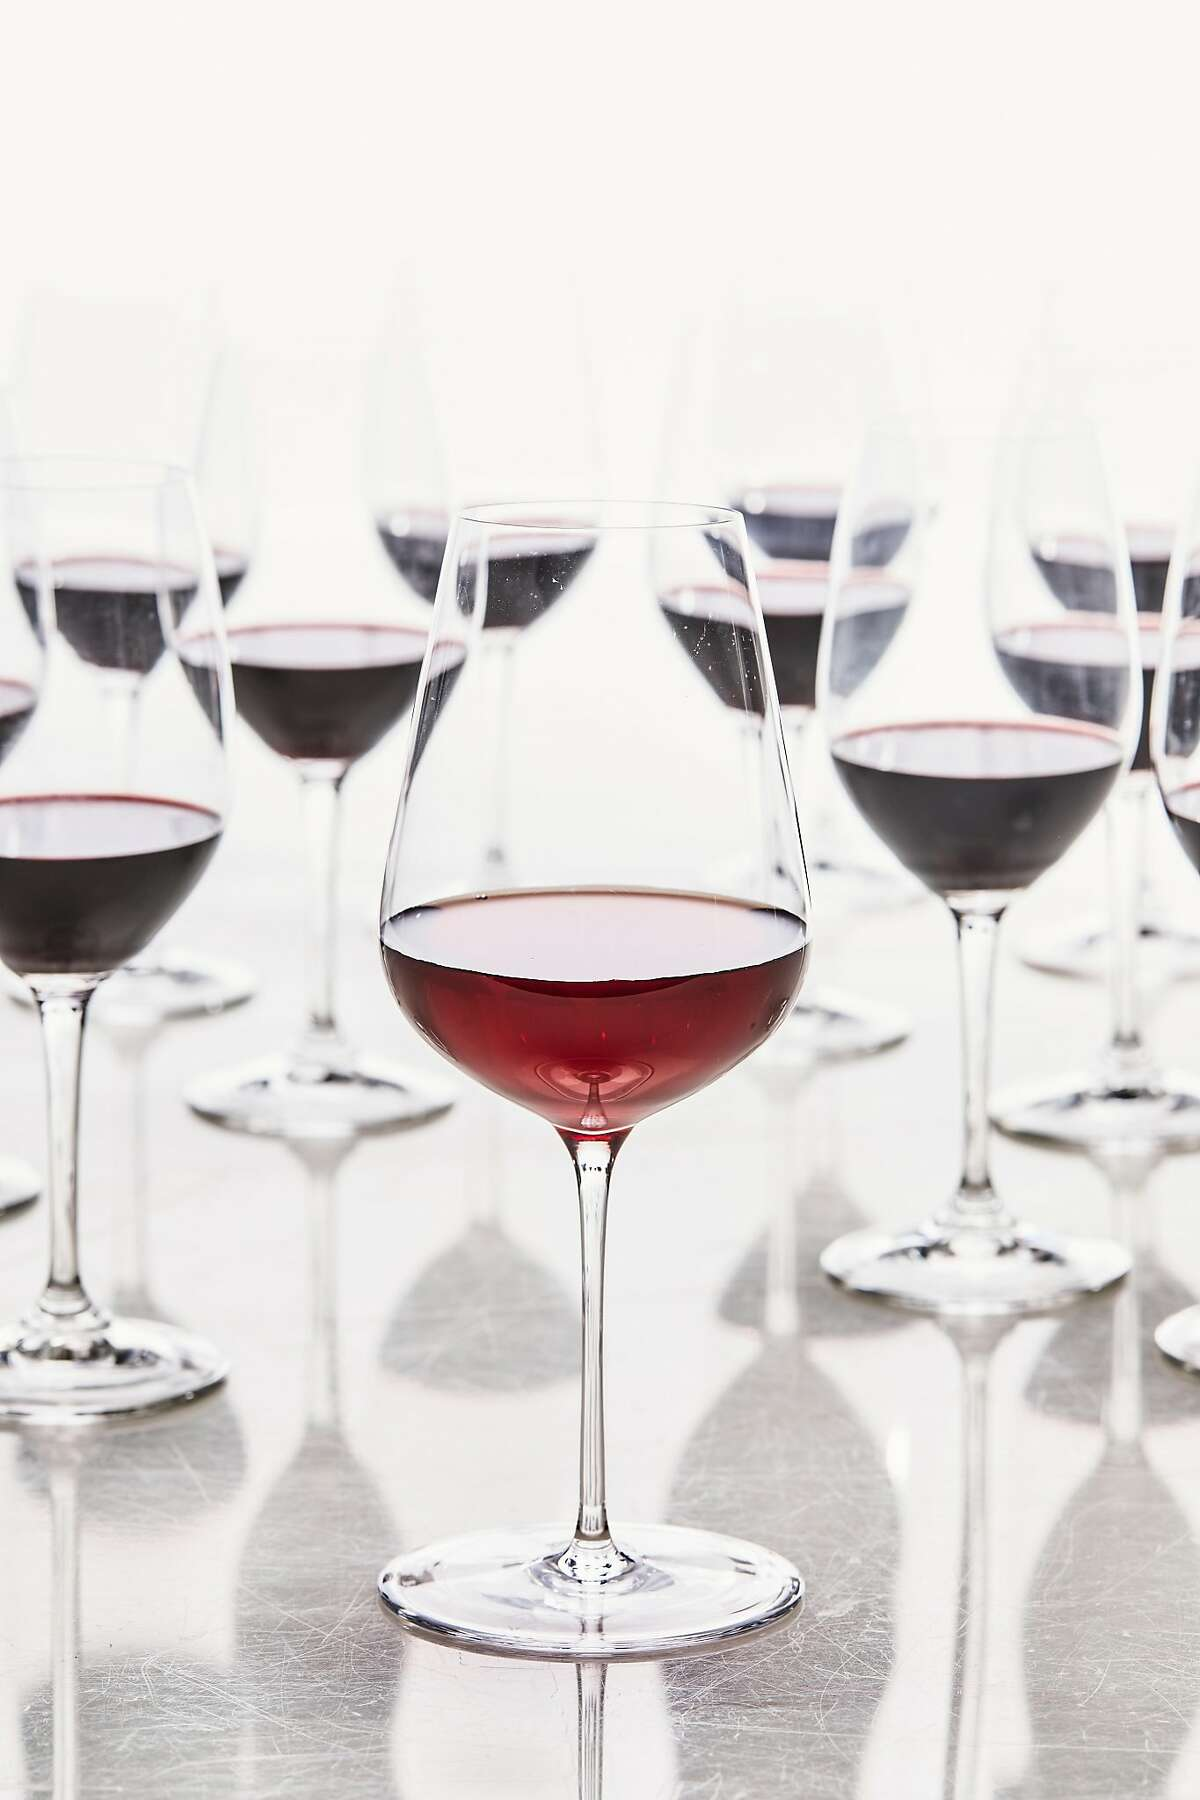 Bright flavors, light extraction and textural grip are signatures of this increasingly popular wine style.